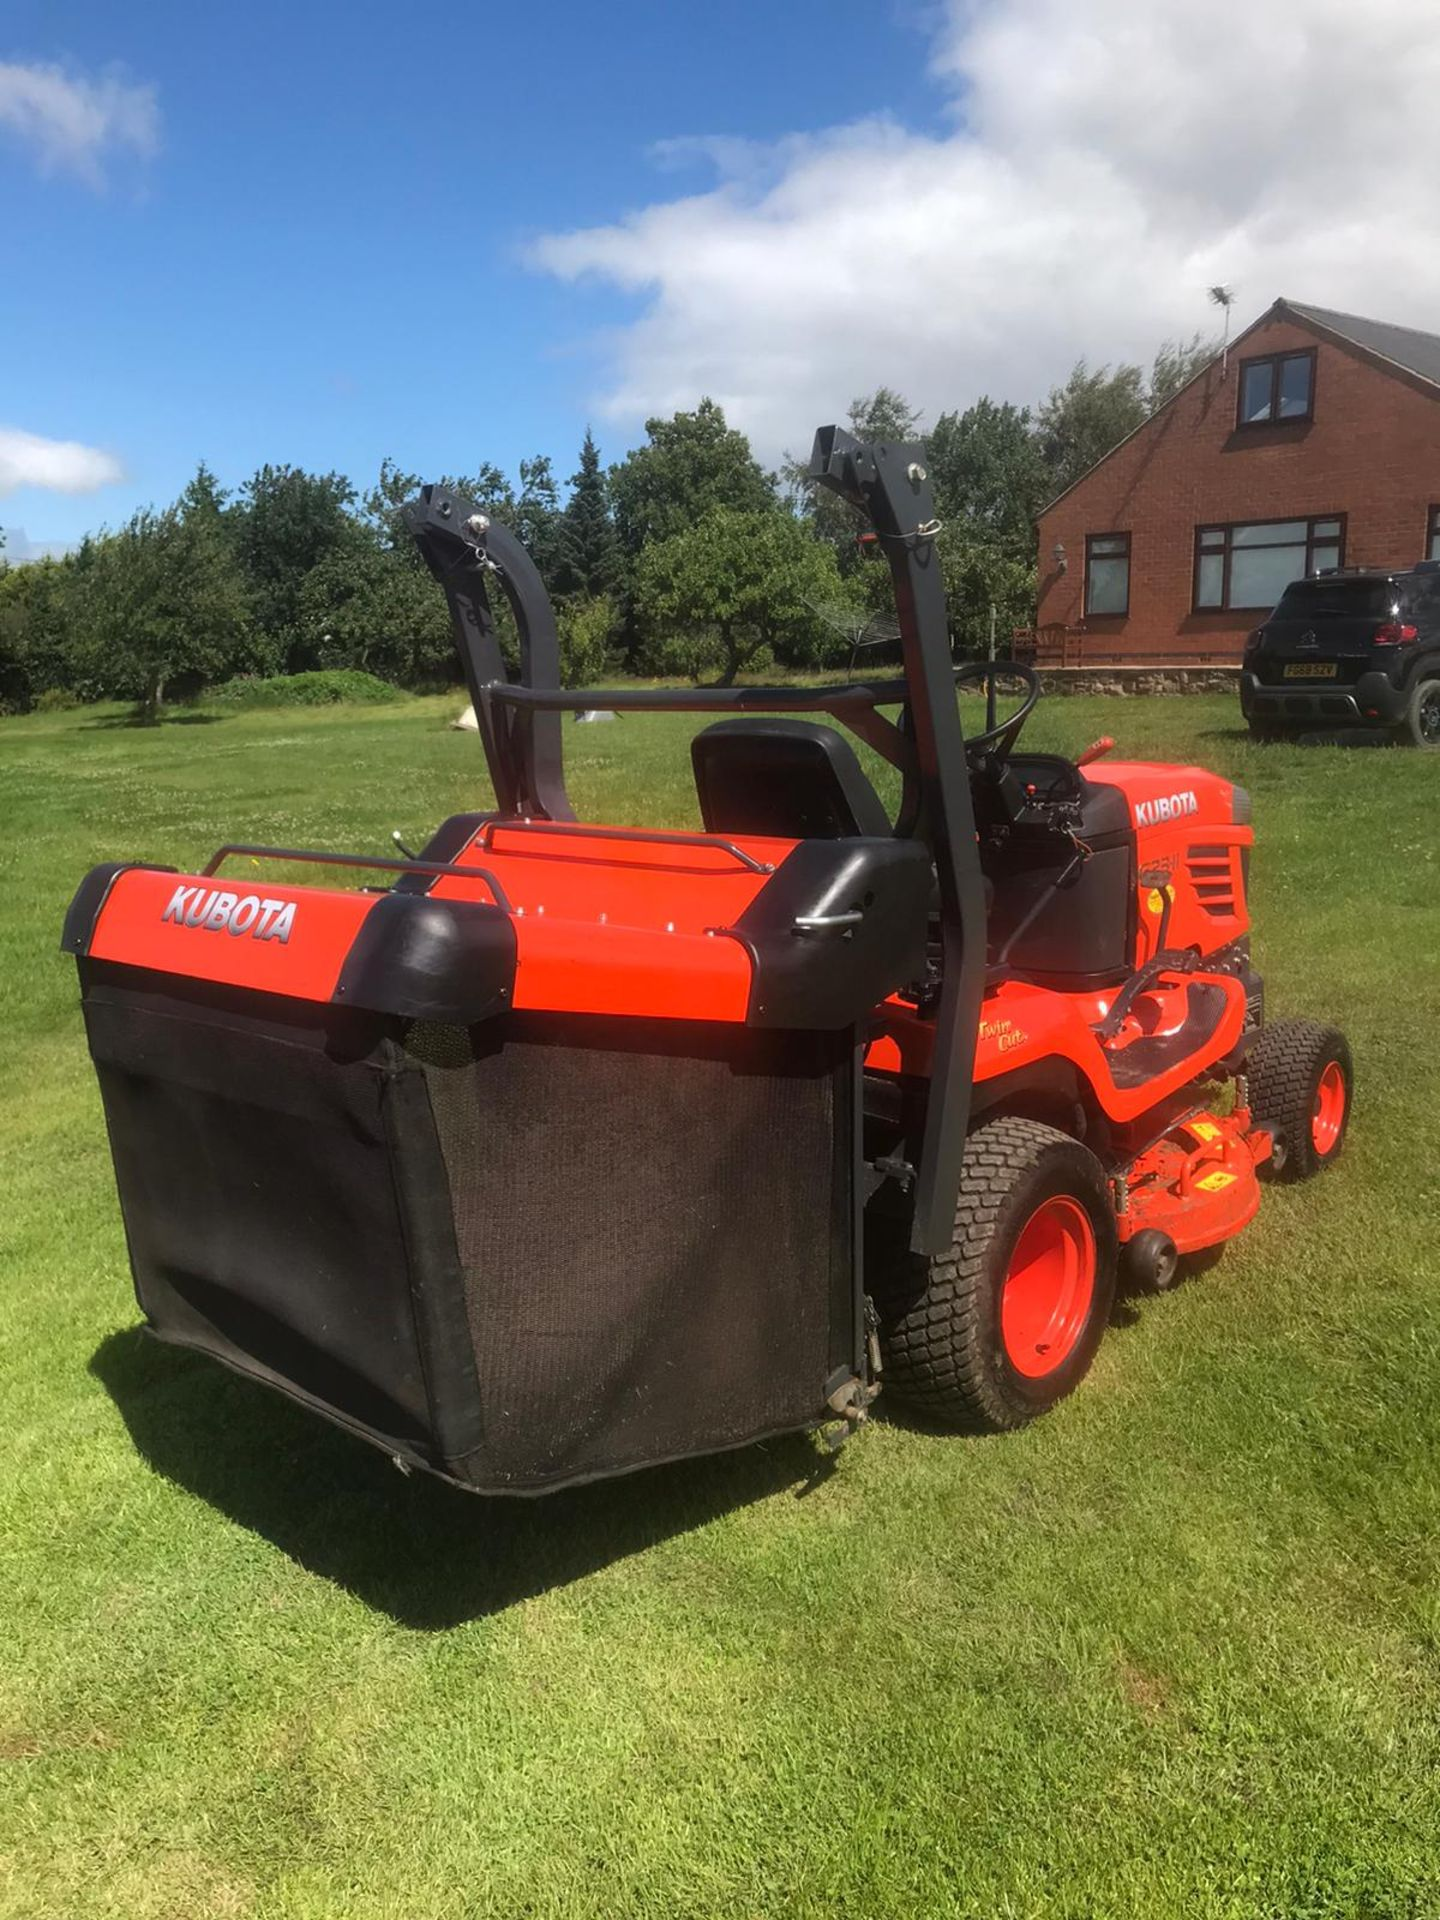 2015 KUBOTA G23-II RIDE ON LAWN MOWER, RUNS, DRIVES & CUTS, EX DEMO CONDITION, 203 HOURS *PLUS VAT* - Image 3 of 5